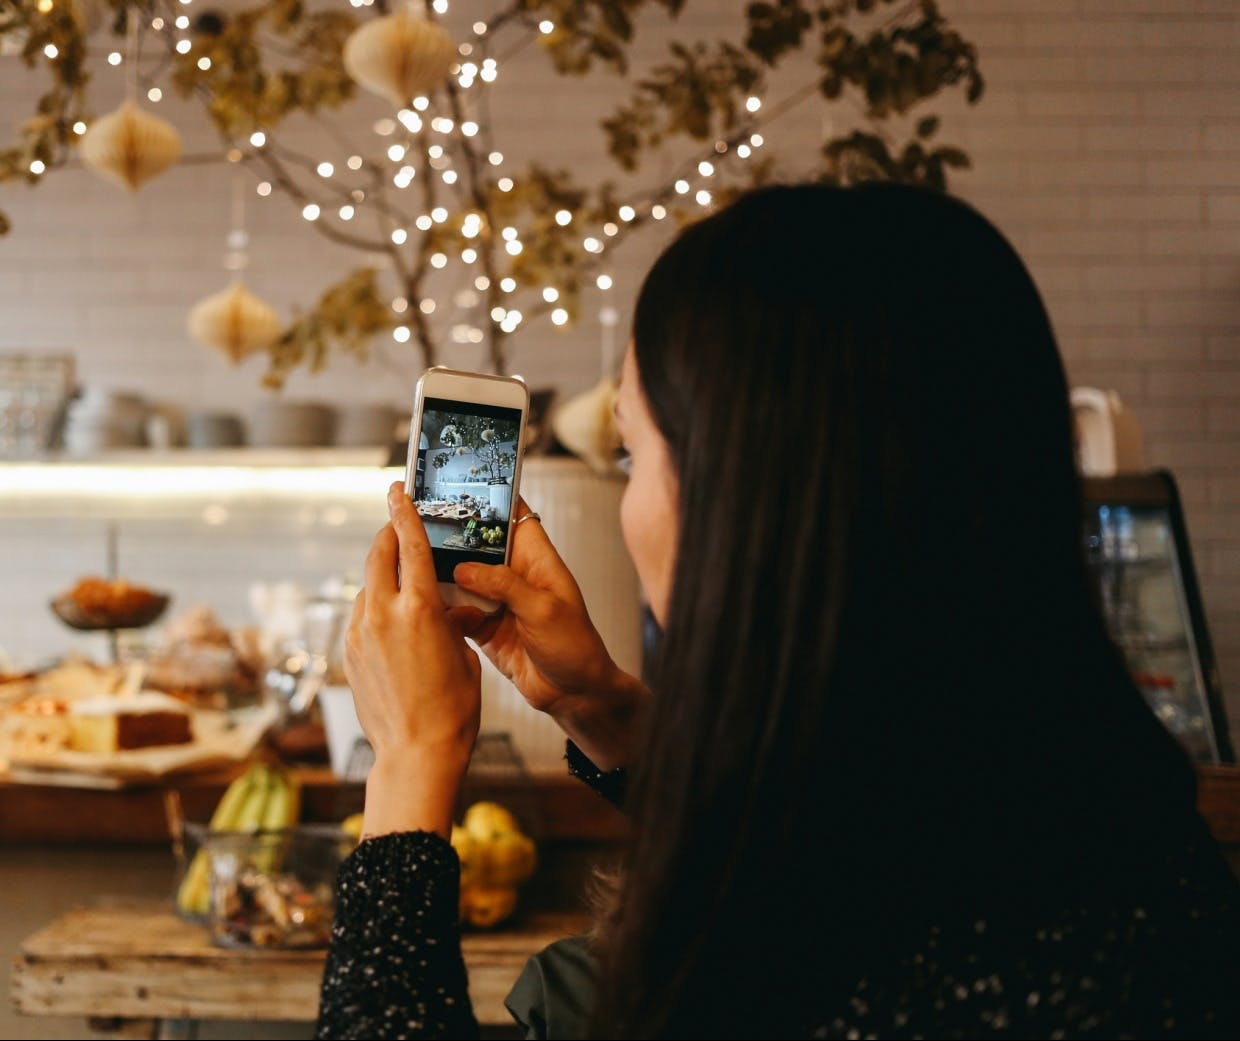 Instagram is growing its value faster than any other brand